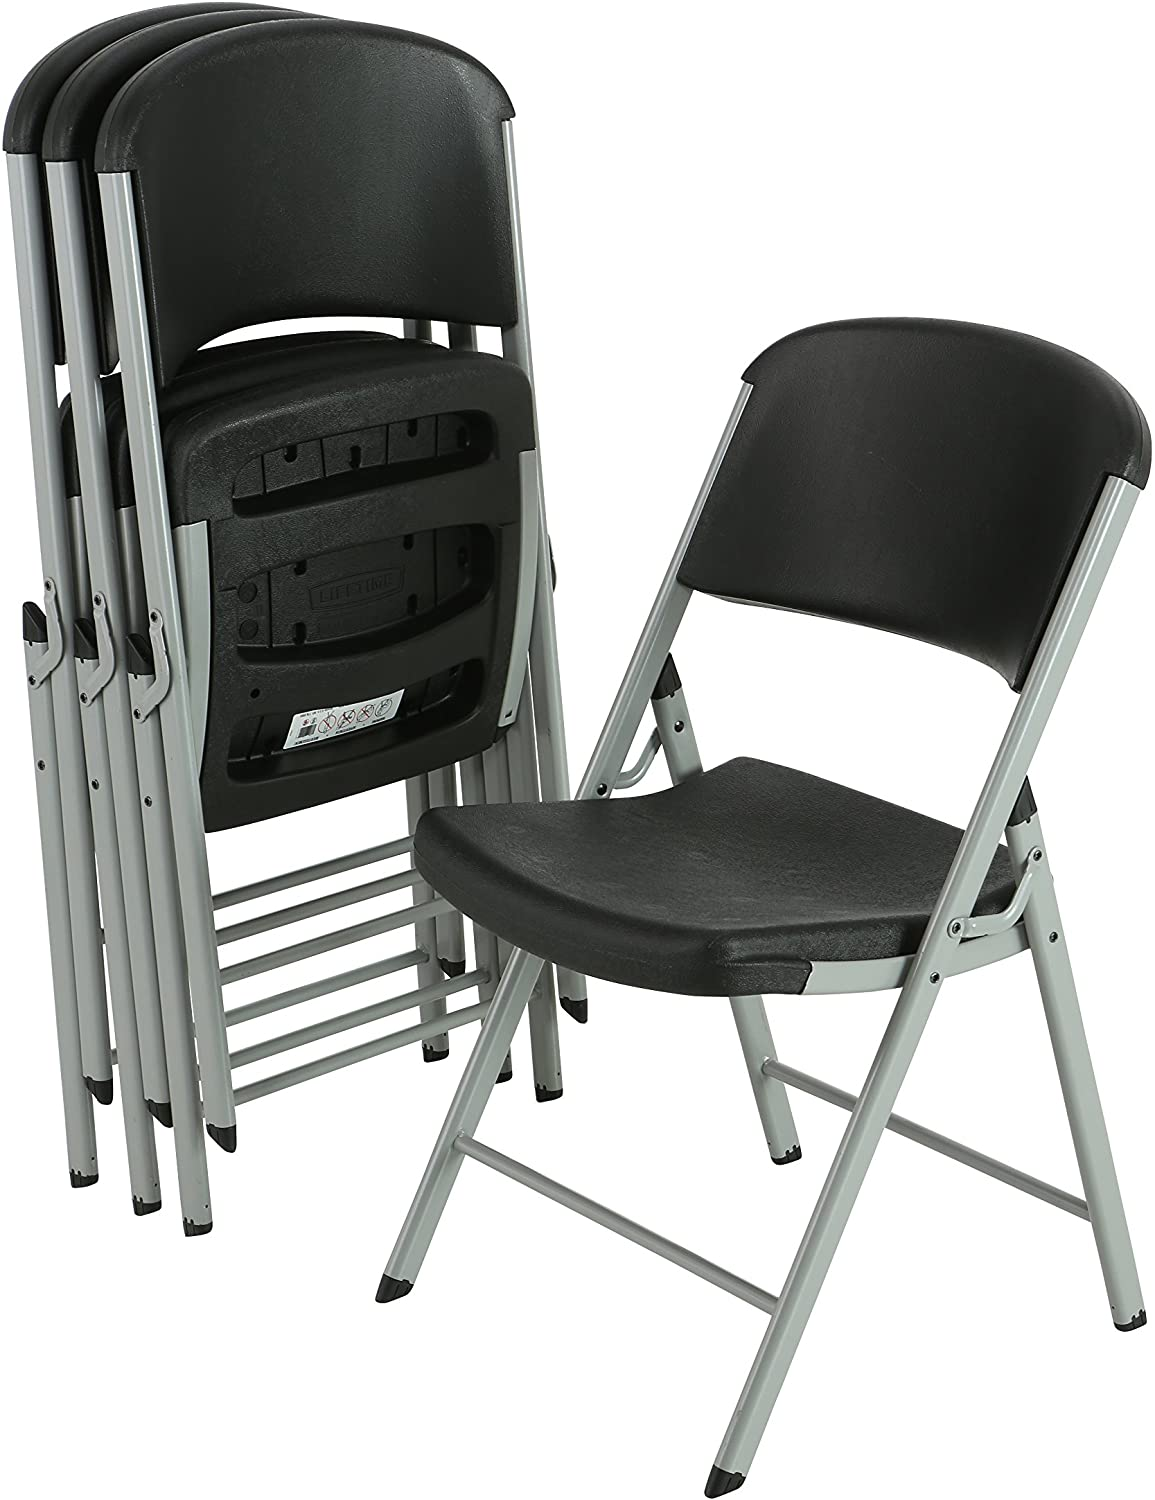 Complete Free Shipping Store LIFETIME Commercial Grade Folding Chairs 4 Pack Silver Black